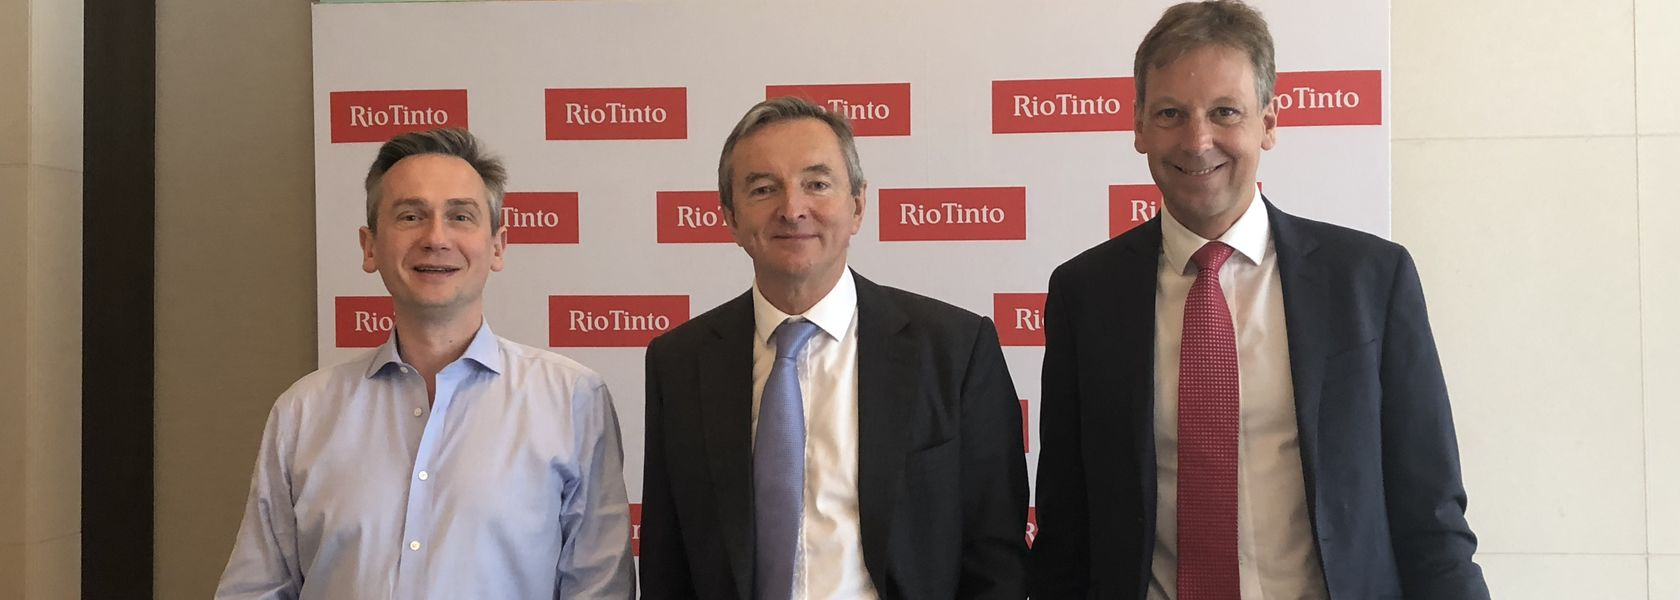 Winu excitement builds at Rio Tinto - Mining Journal